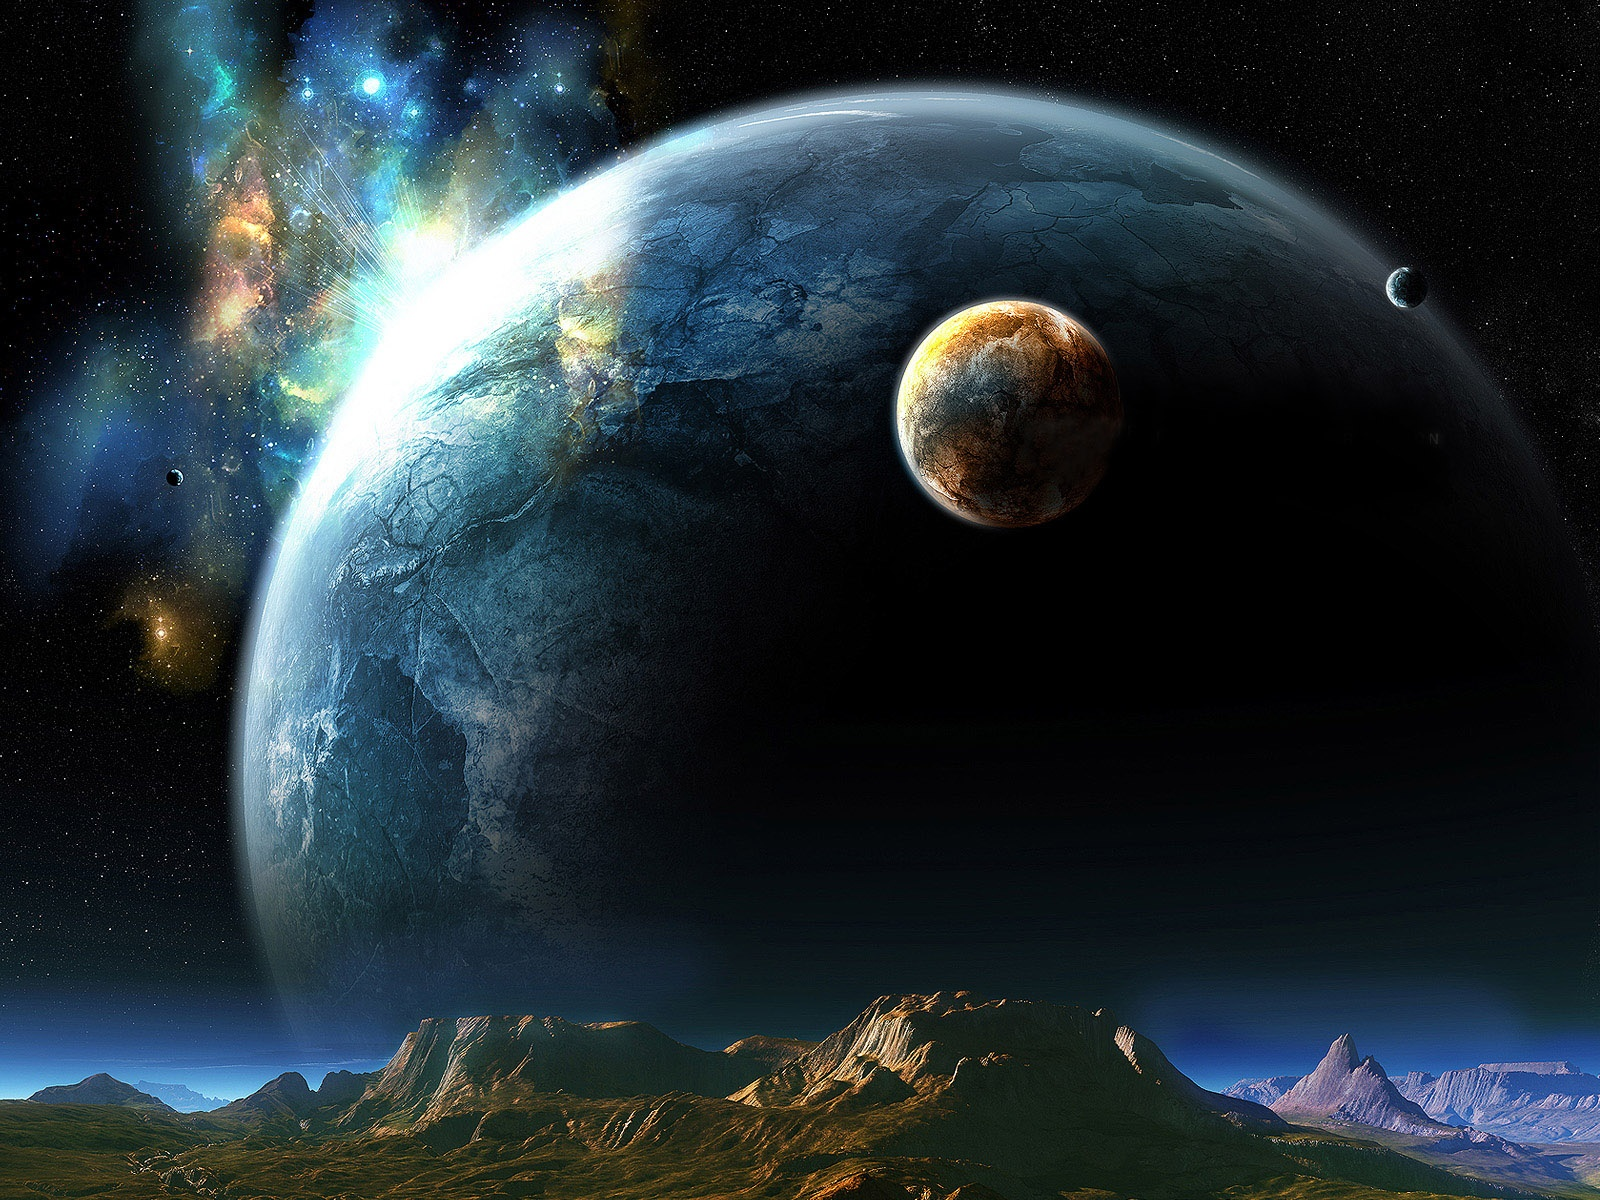 wallpapers of giant planets - photo #20